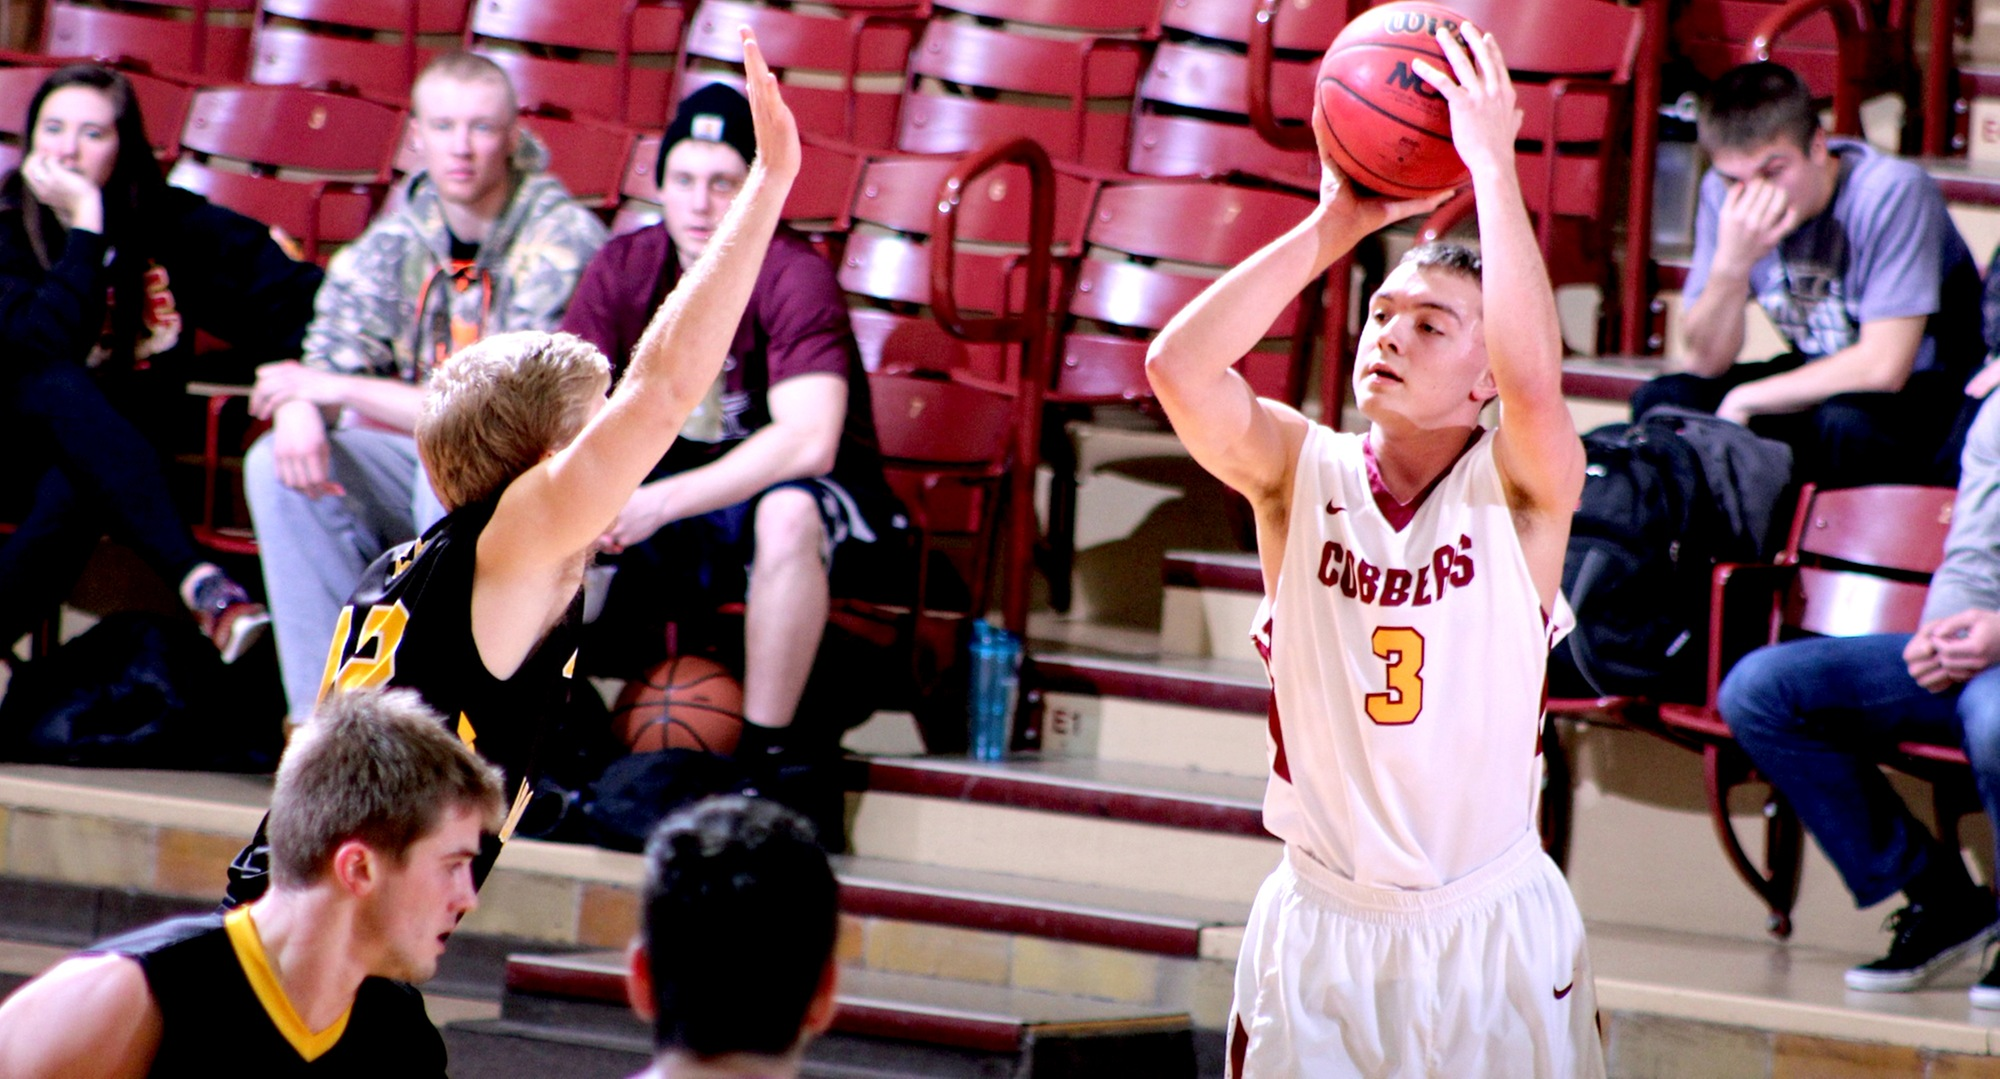 Zach Kinny gets ready to knock down one of his six 3-pointers against Gustavus. He went 8-of-12 from the floor, including 6-for-8 from beyond the arc and scored a career-high 24 points.